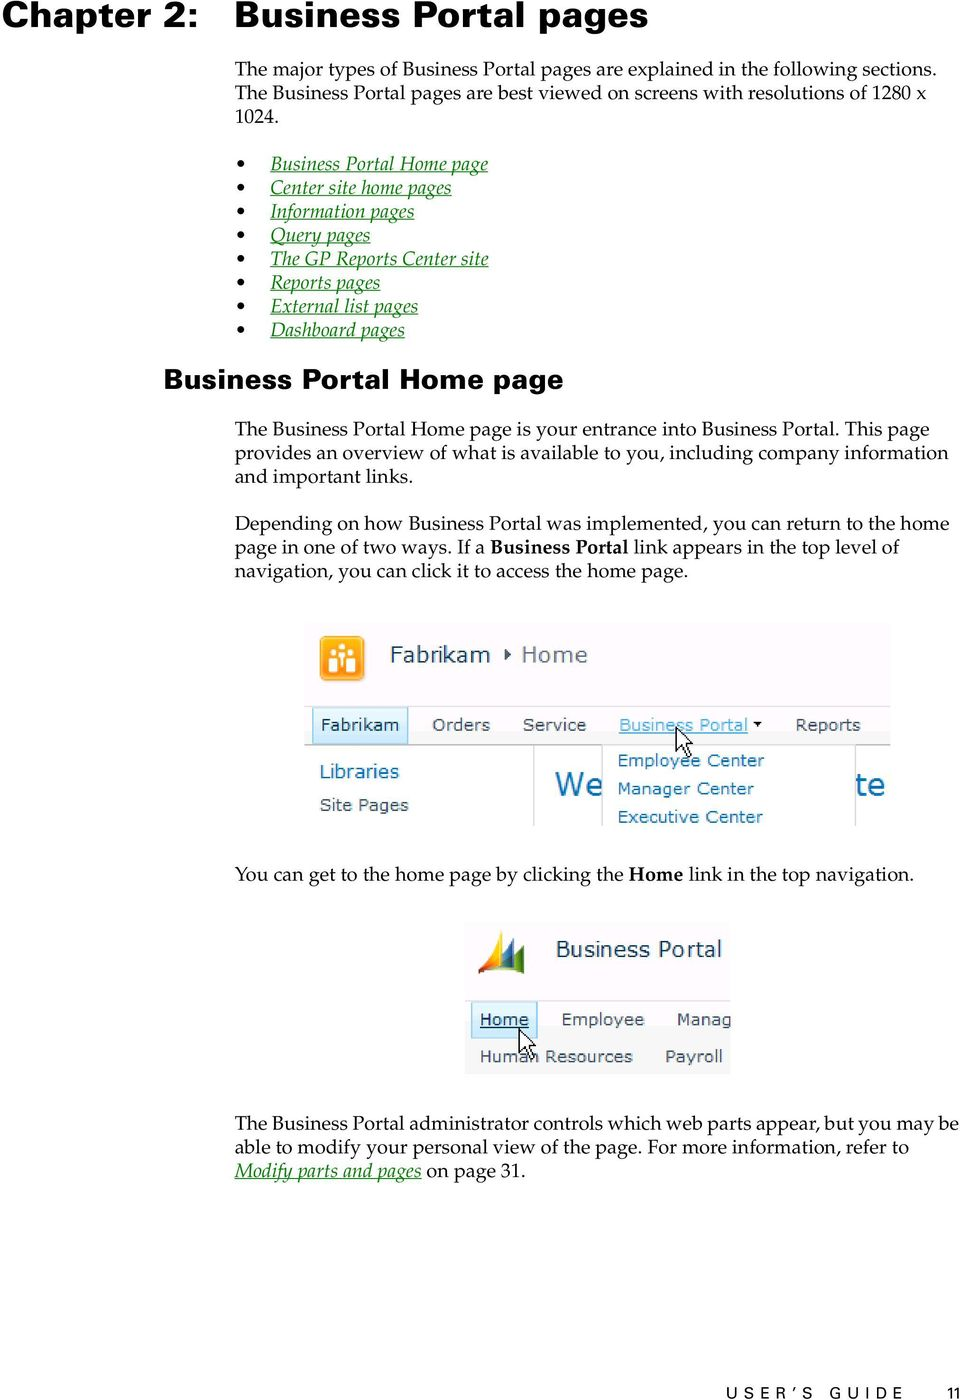 Portal Home page is your entrance into Business Portal. This page provides an overview of what is available to you, including company information and important links.